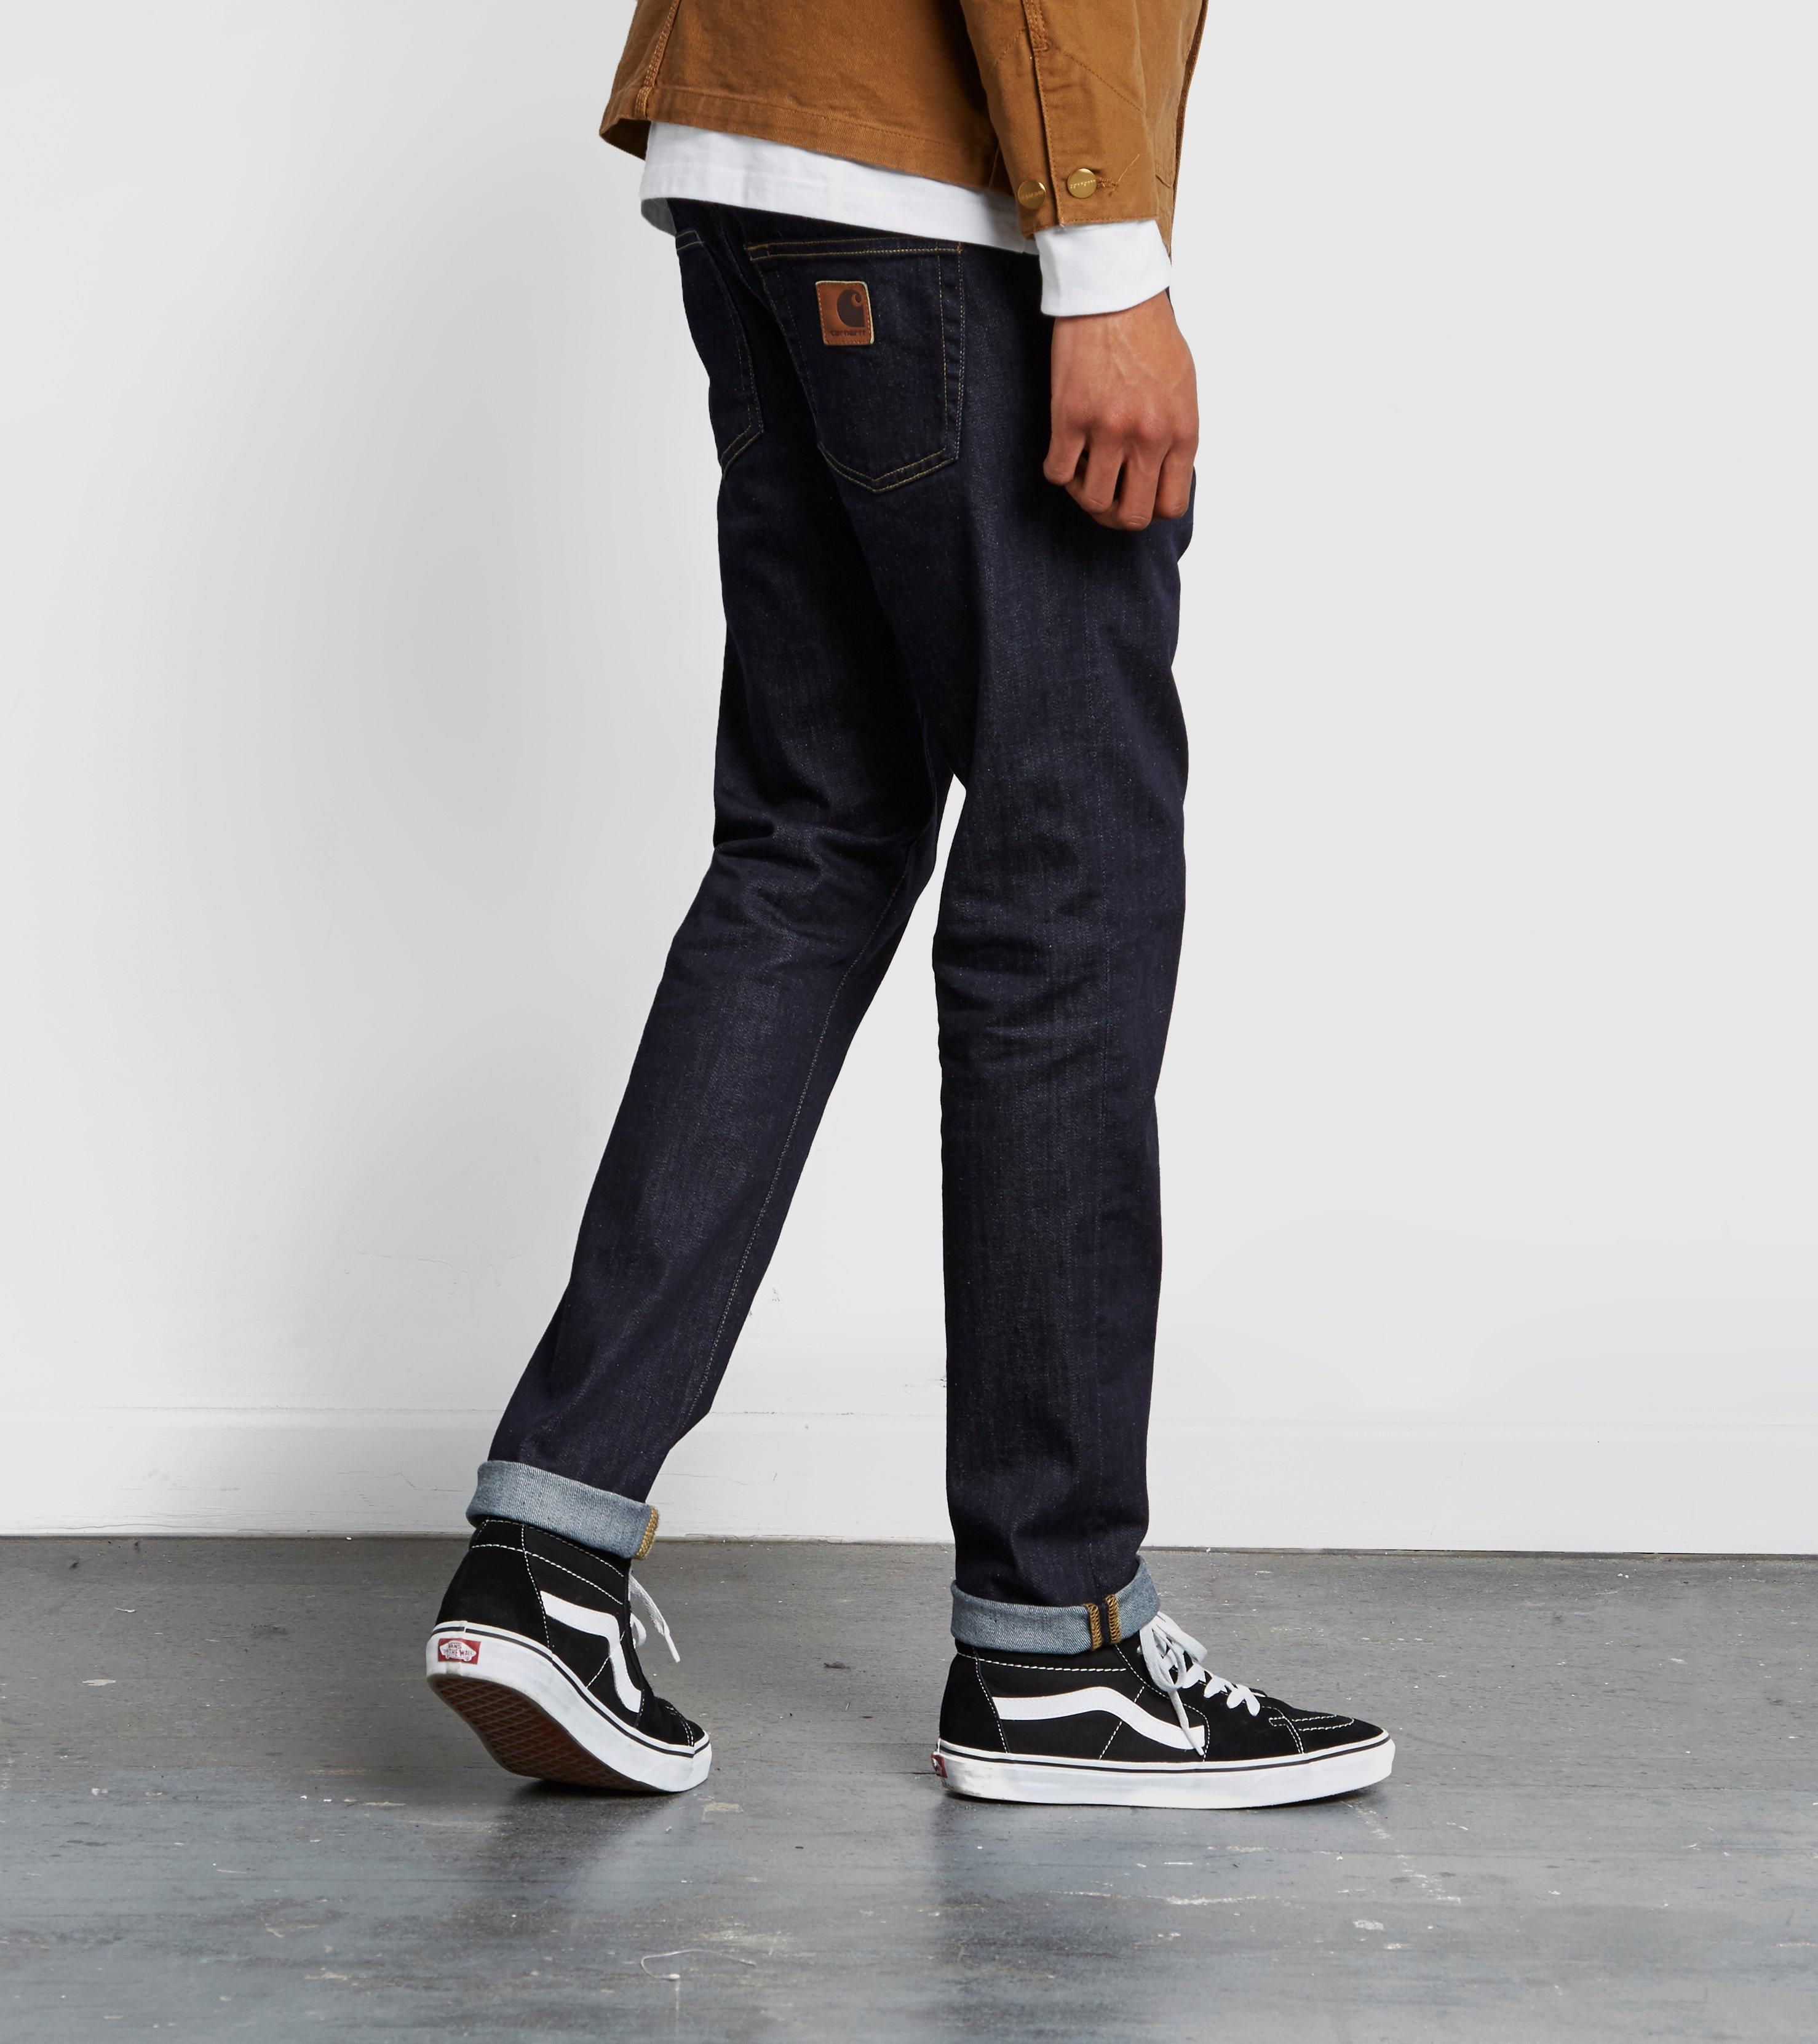 Rebel Pant In Slim Tapered Fit In Blue - Blue Carhartt Work in Progress New And Fashion Cheap Sale 2018 New Outlet Discounts wrlugrso93